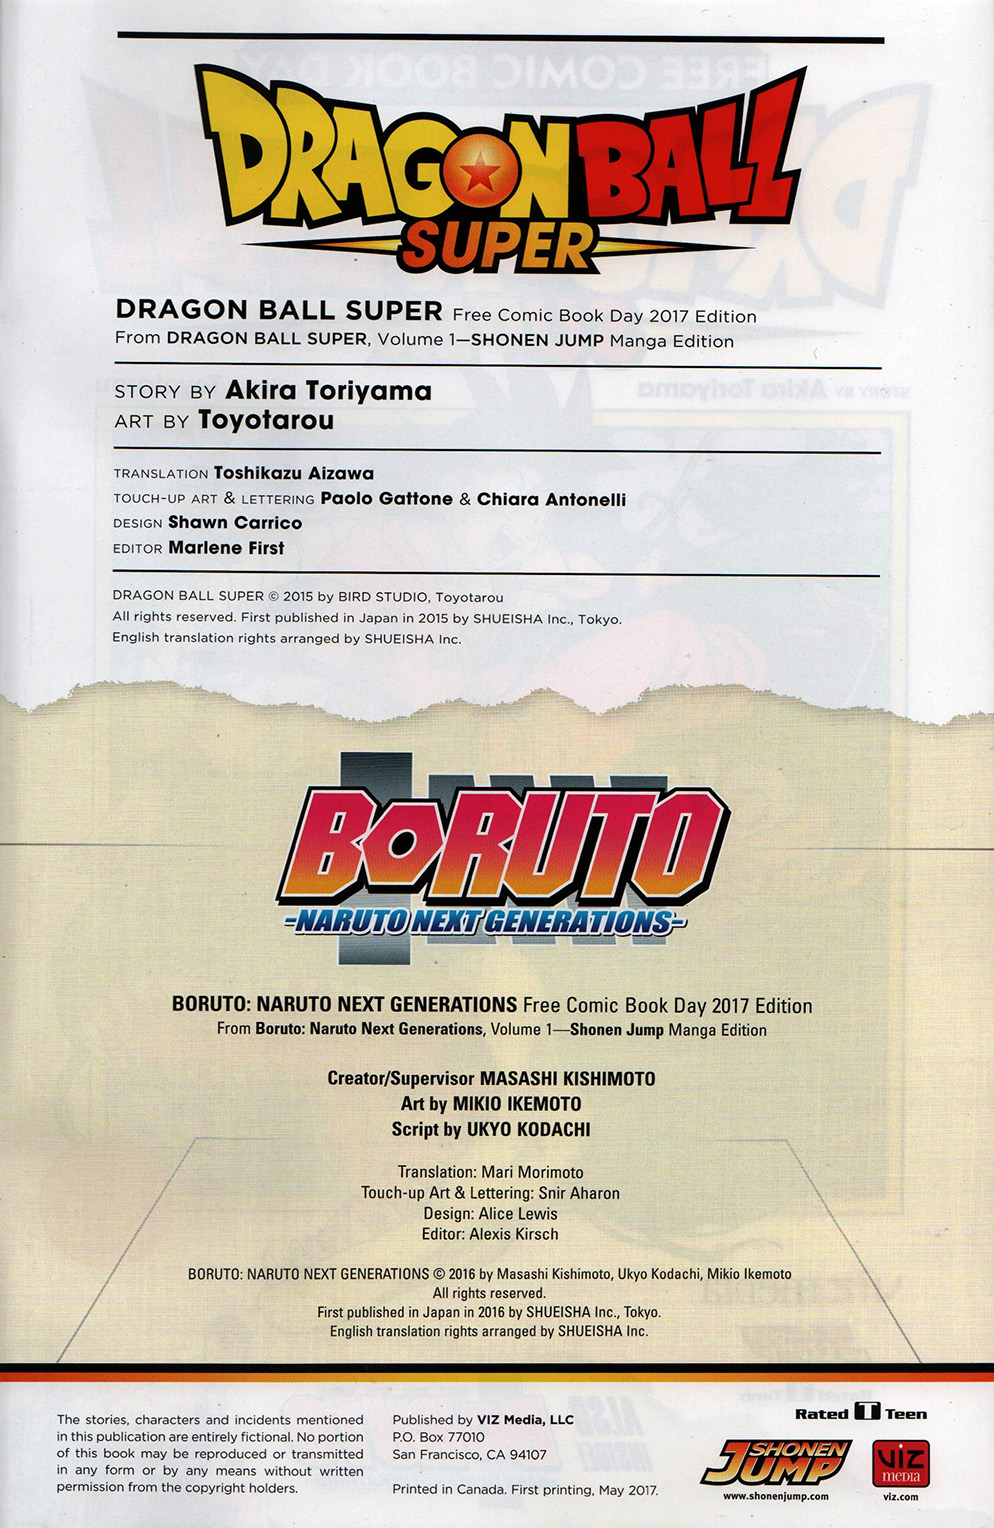 Read online Free Comic Book Day 2017 comic -  Issue # Dragon Ball Super - 3